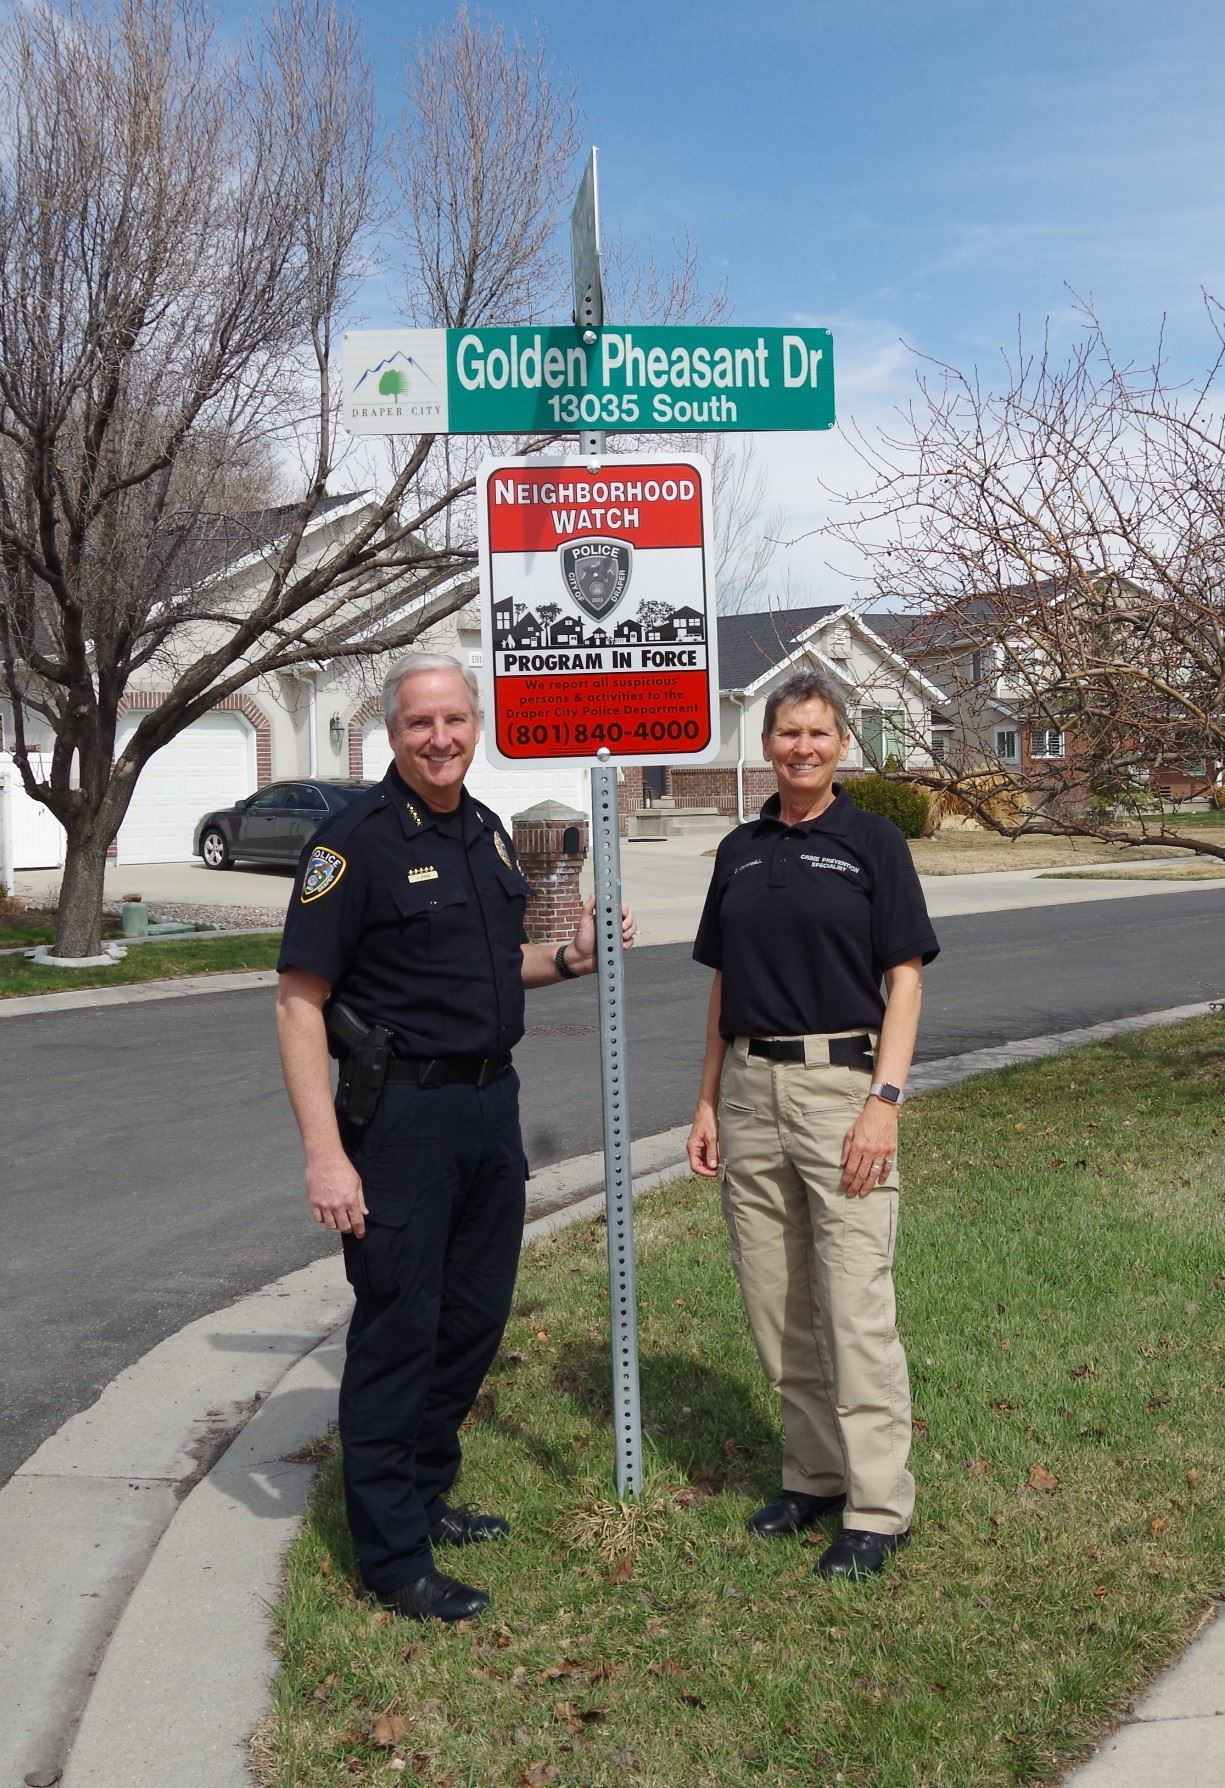 Chief and Crime Prevention Specialist by Neighborhood Watch sign.